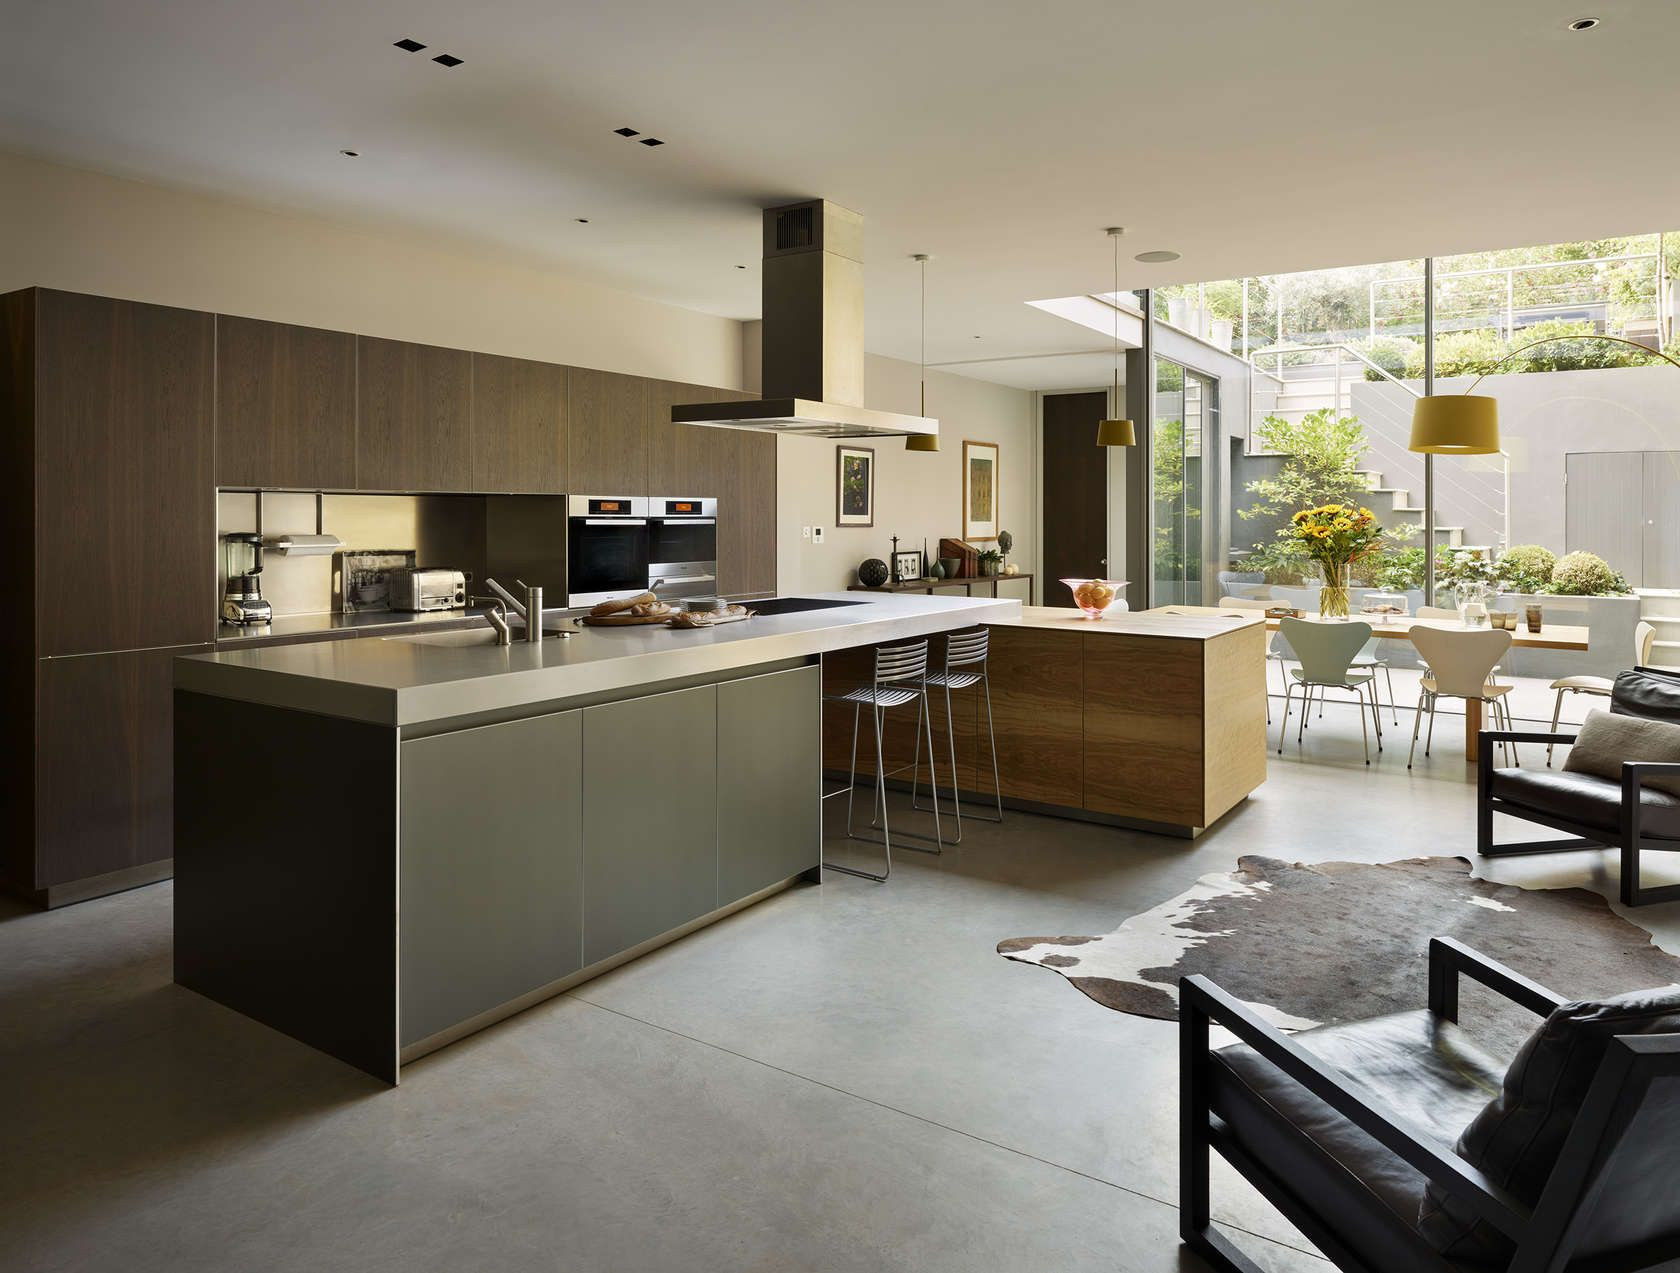 Kitchen Architecture S Bulthaup B3 Furniture In Aluminium Grey And